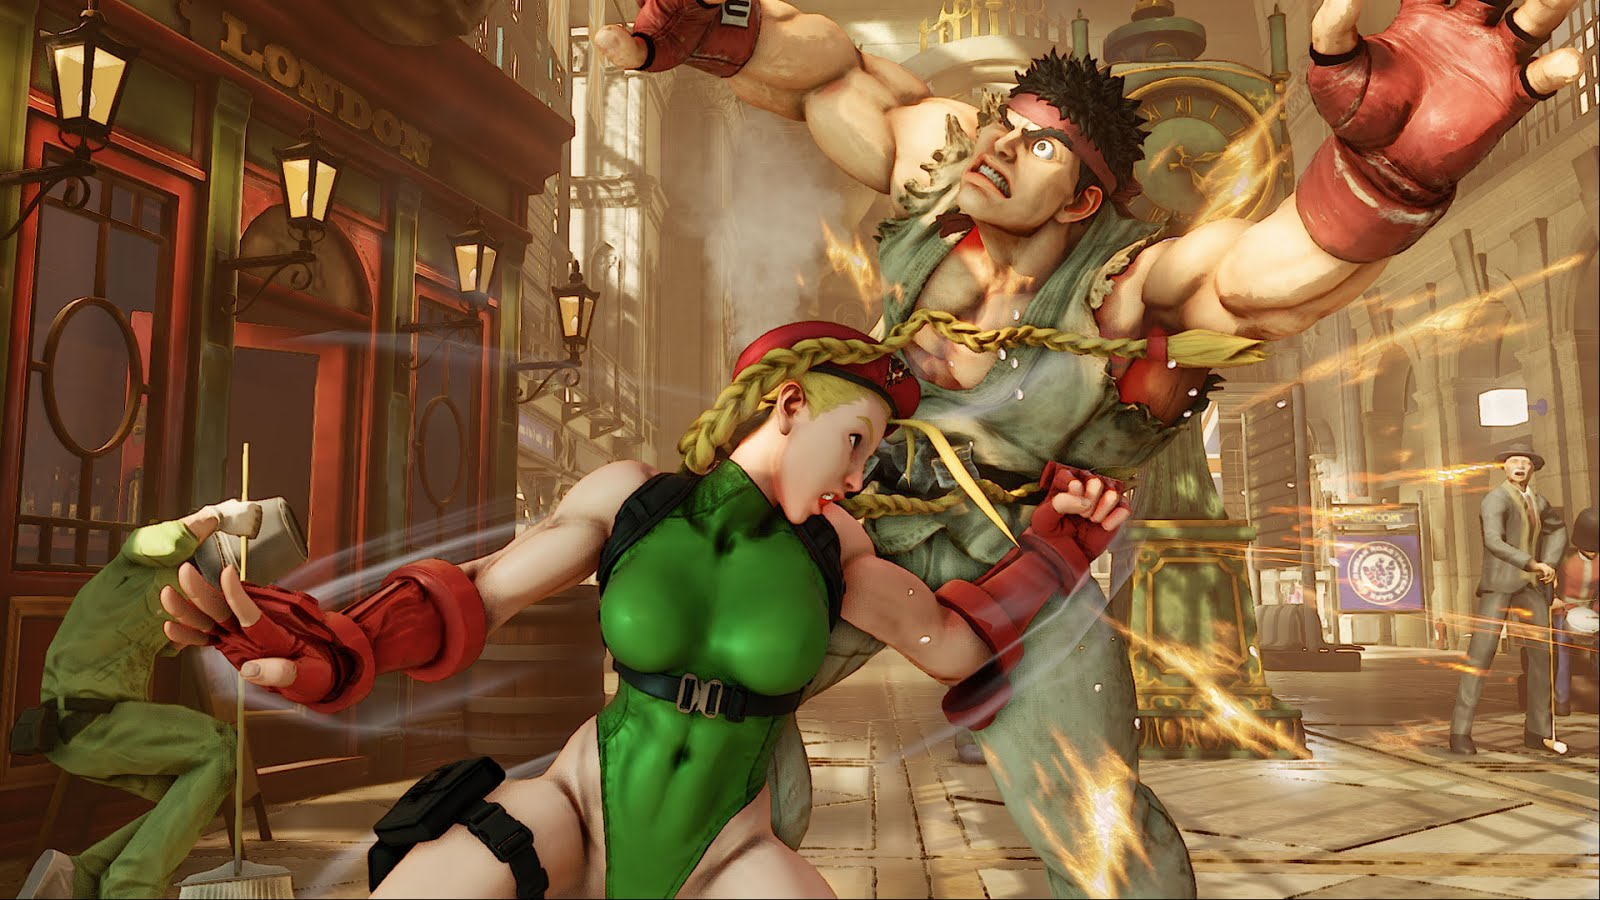 Cammy street fighter hets fuck porn pictures